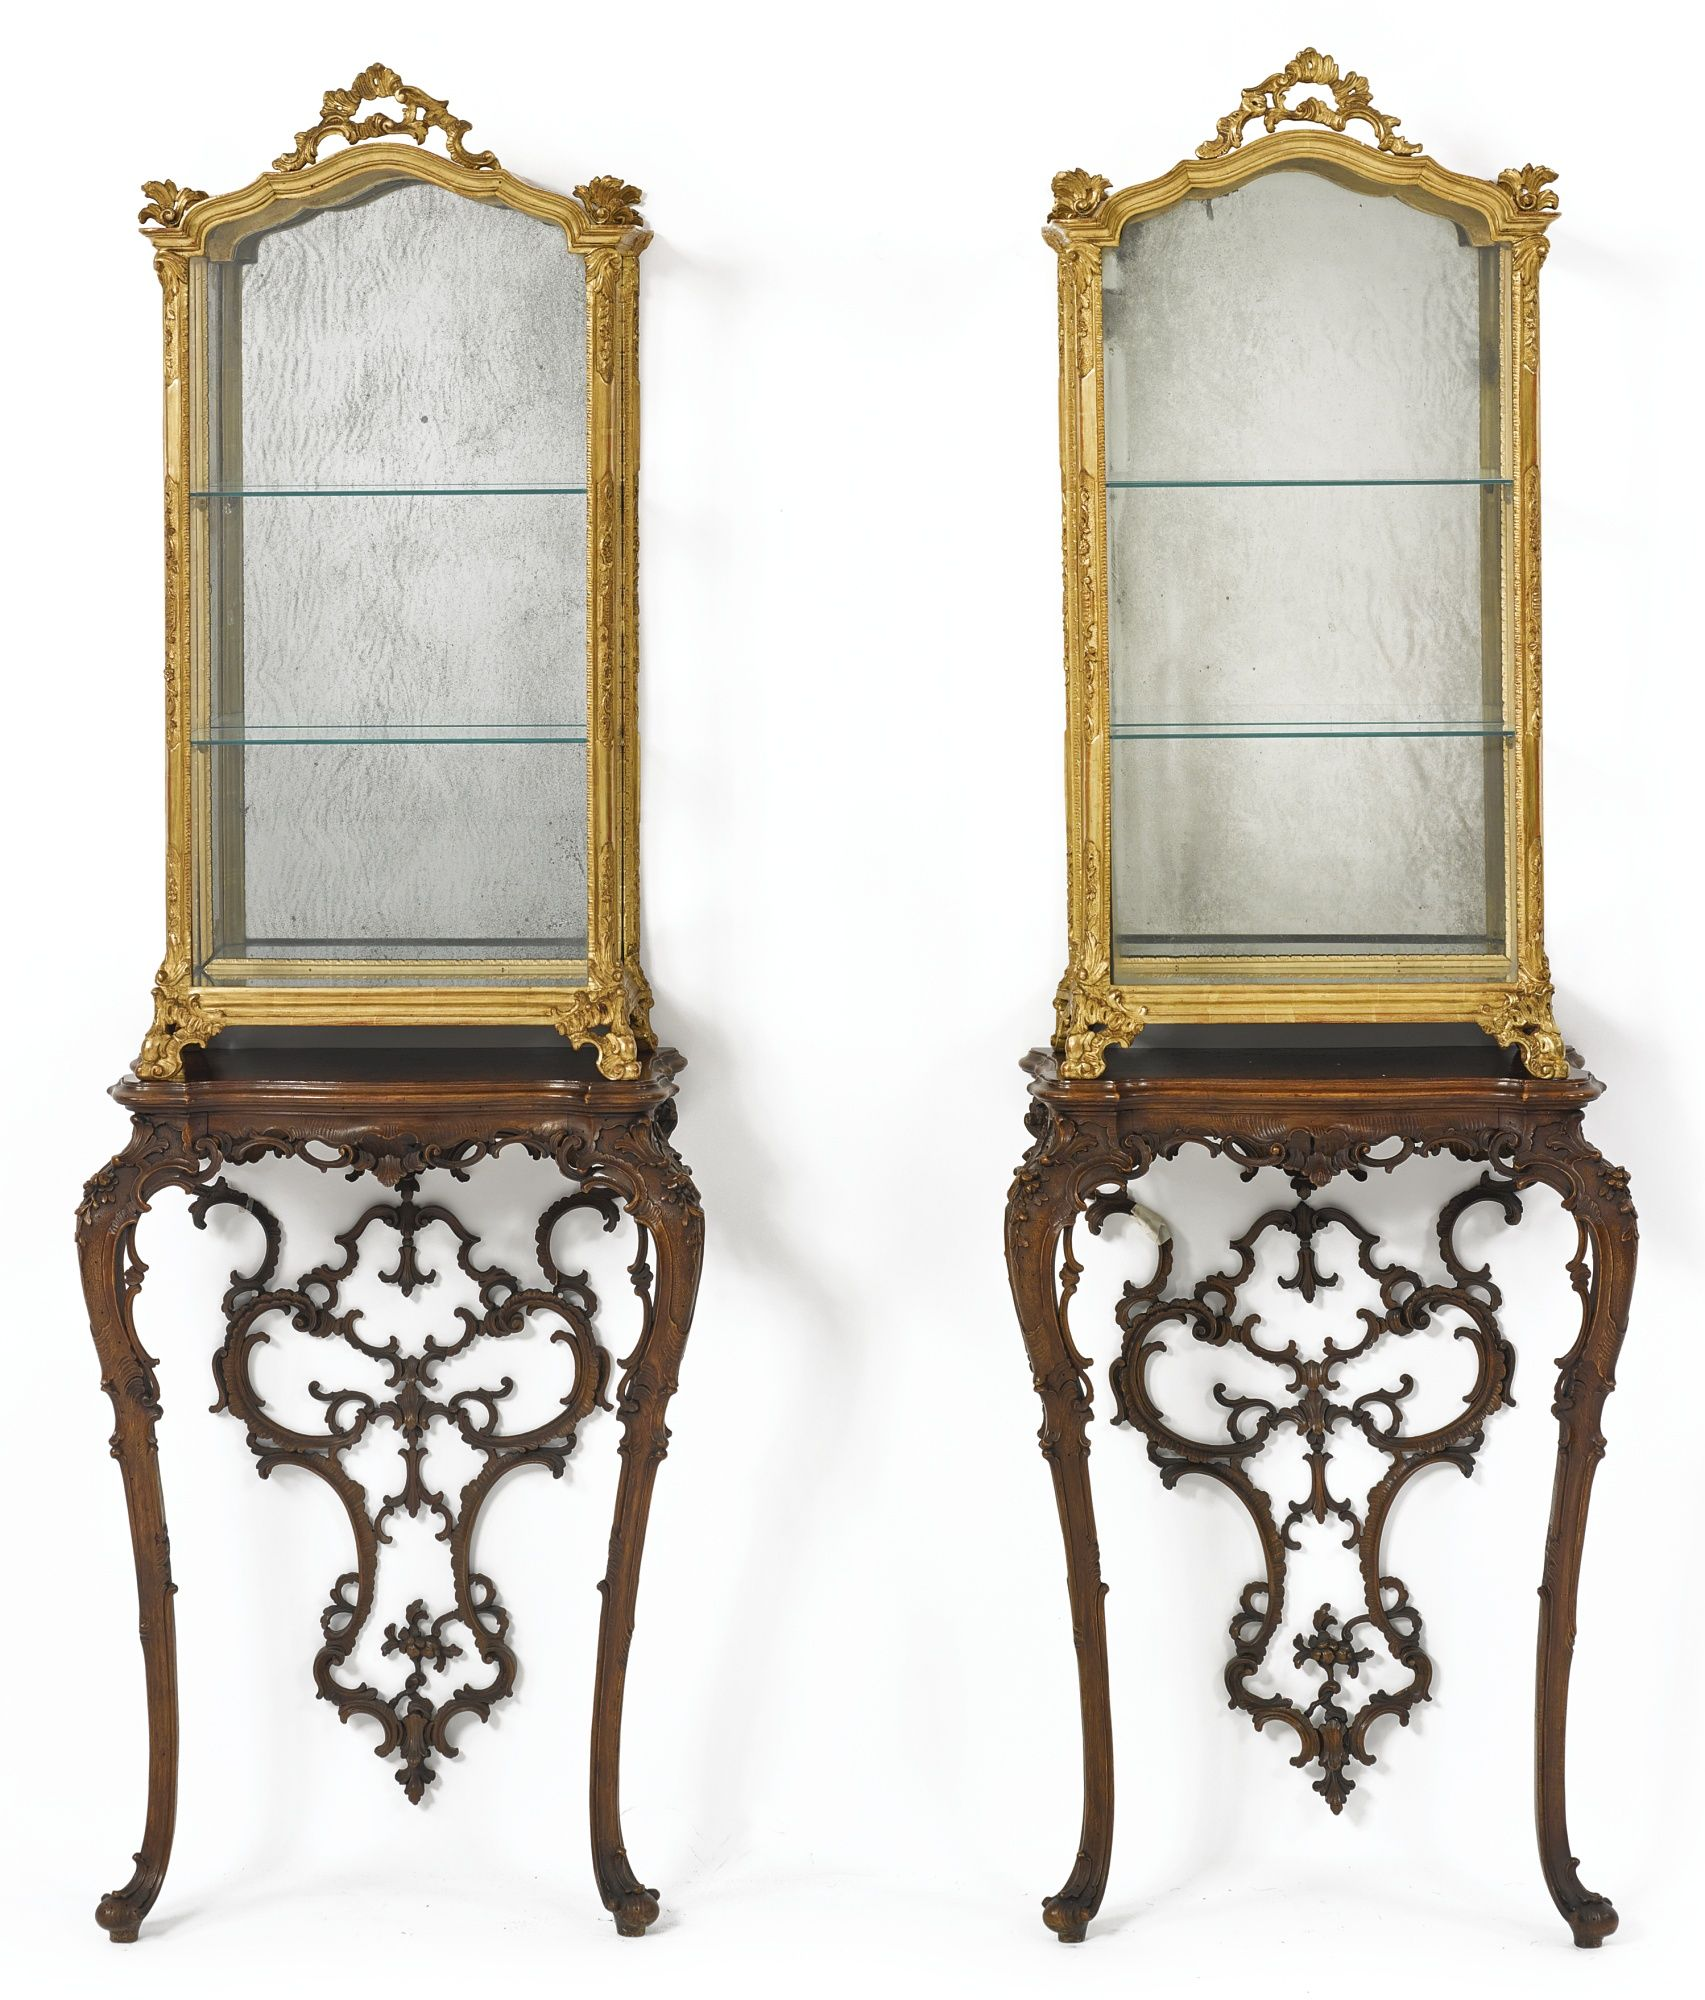 Vintage Furniture A Pair Of Italian Rococo Style Giltwood Vitrines